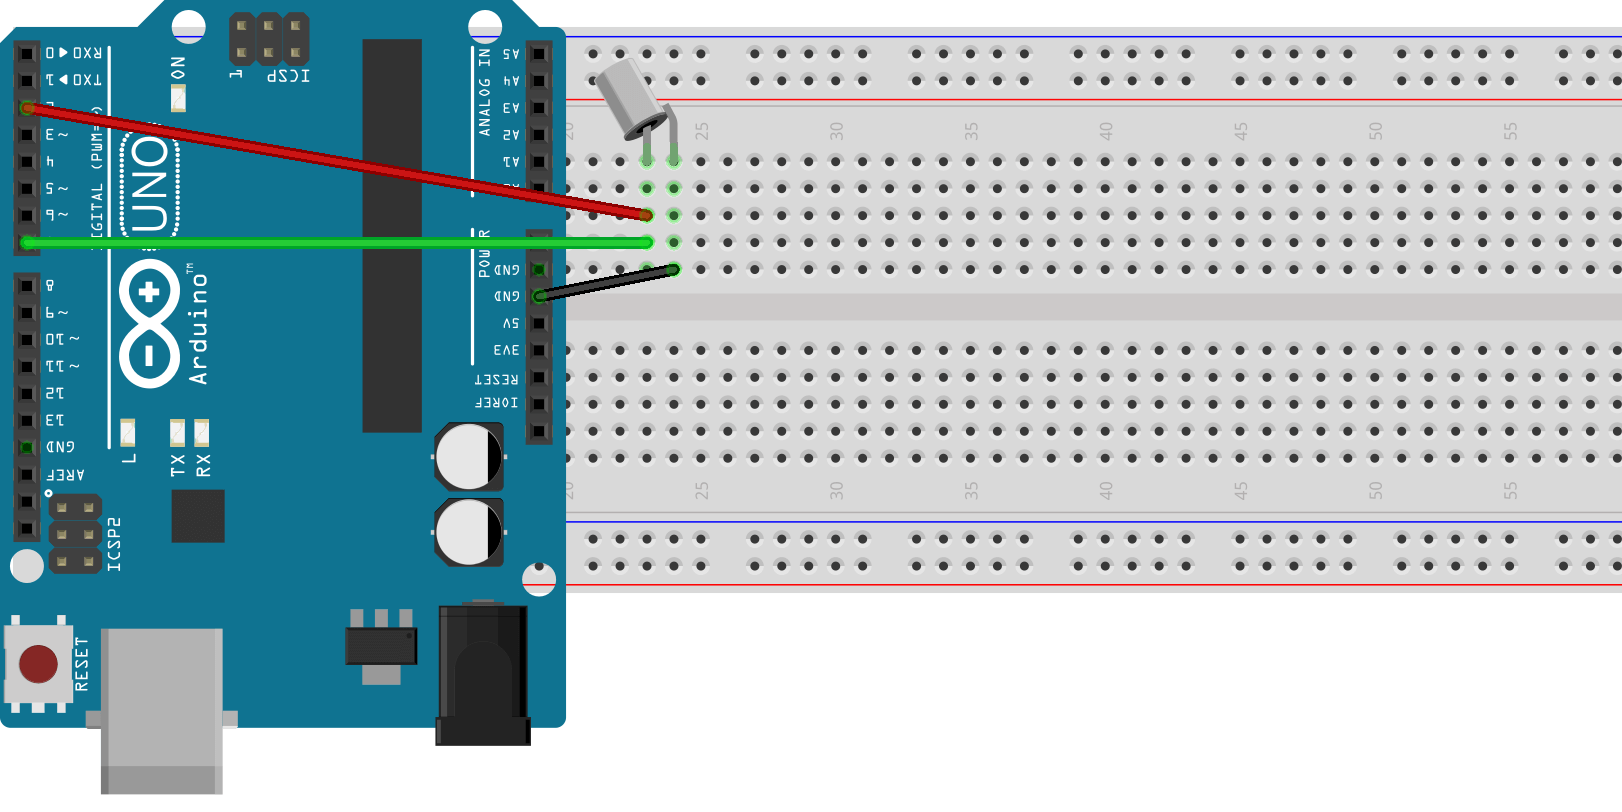 Conectar un tilt switch con pines digitales en Arduino